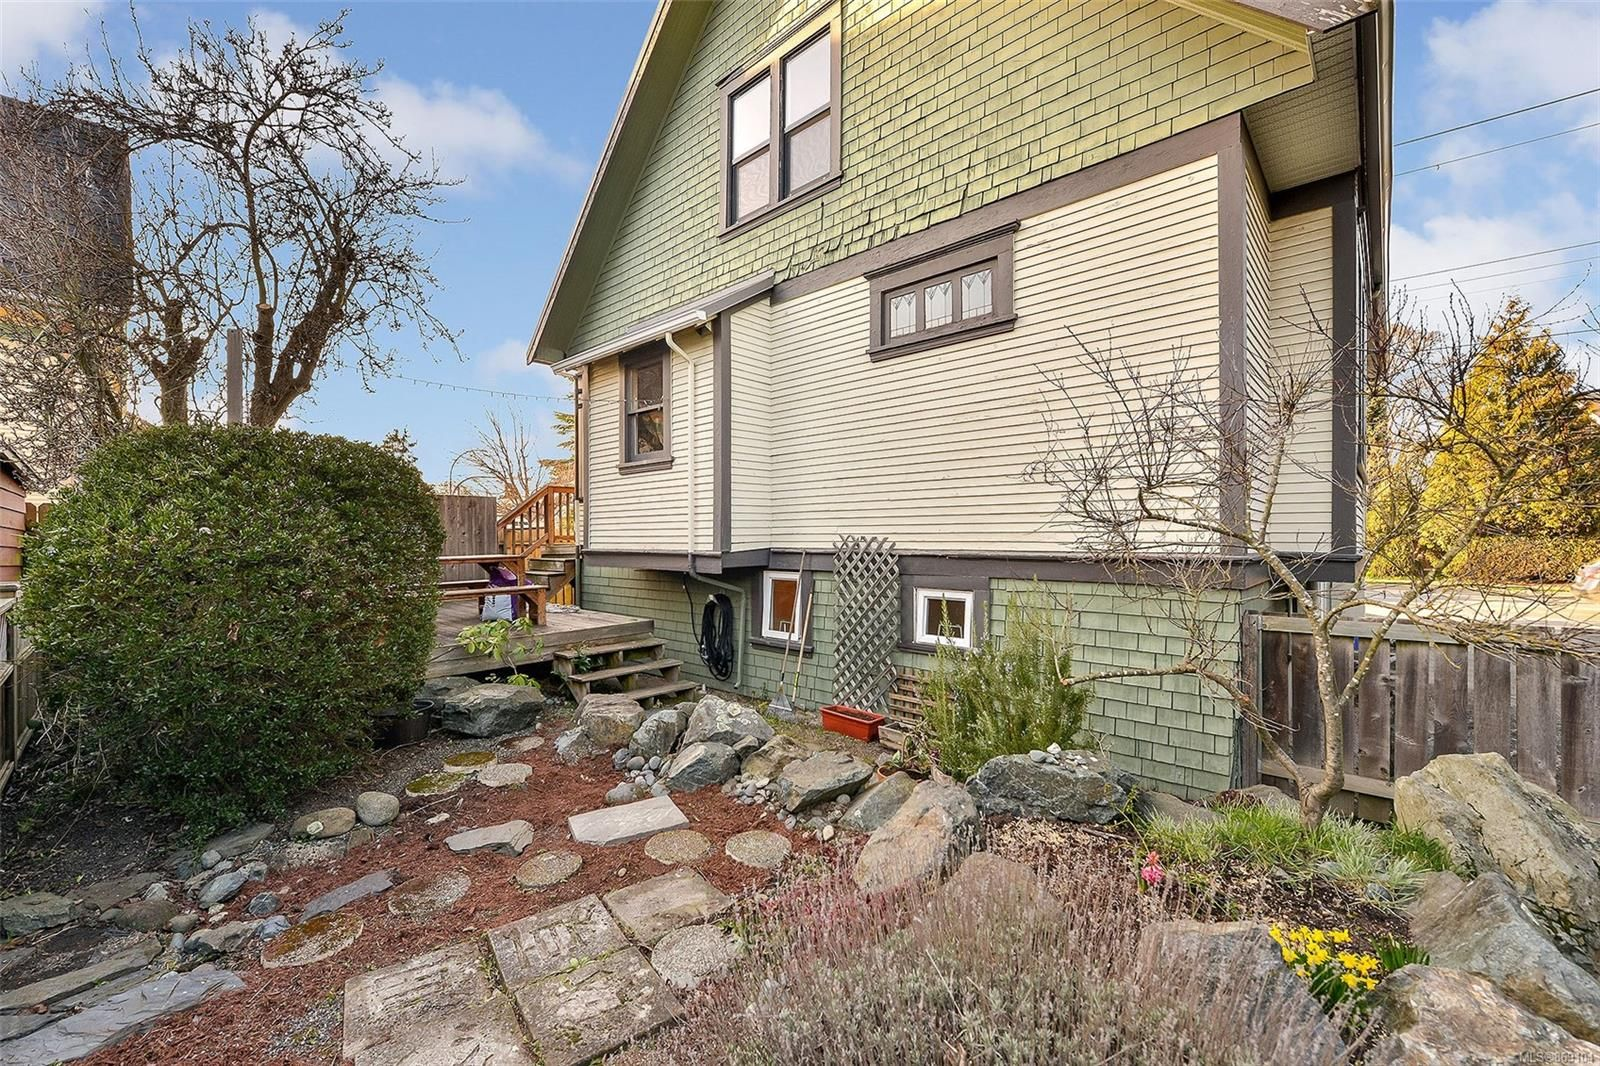 Main Photo: 1025 Bay St in : Vi Central Park House for sale (Victoria)  : MLS®# 869104